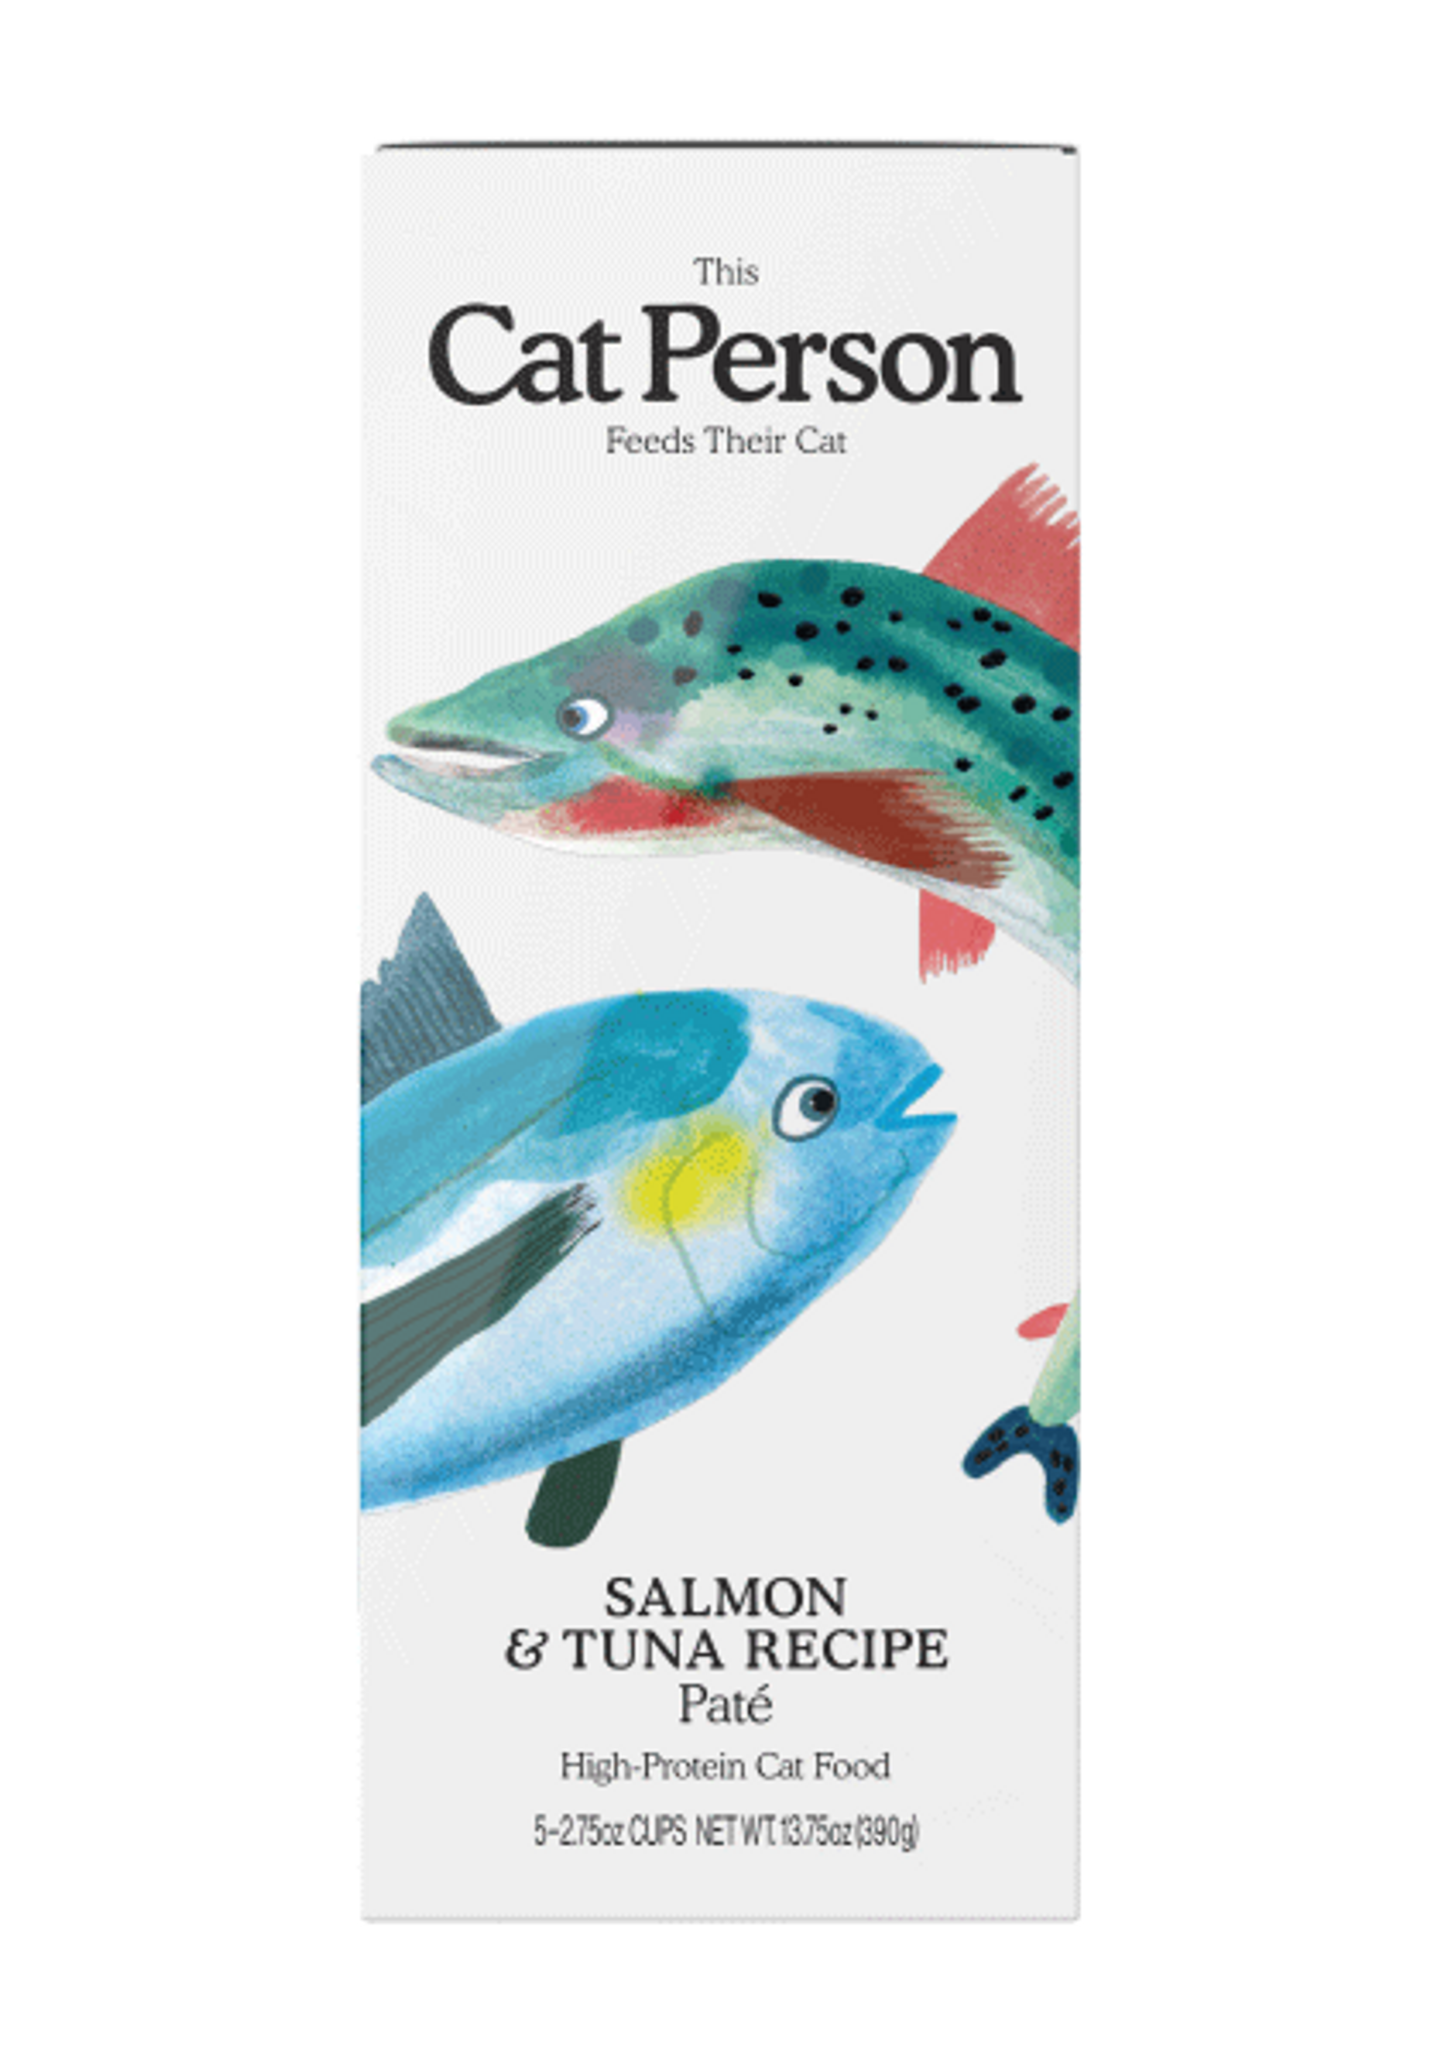 Sleeve of Cat Person s paté wet food